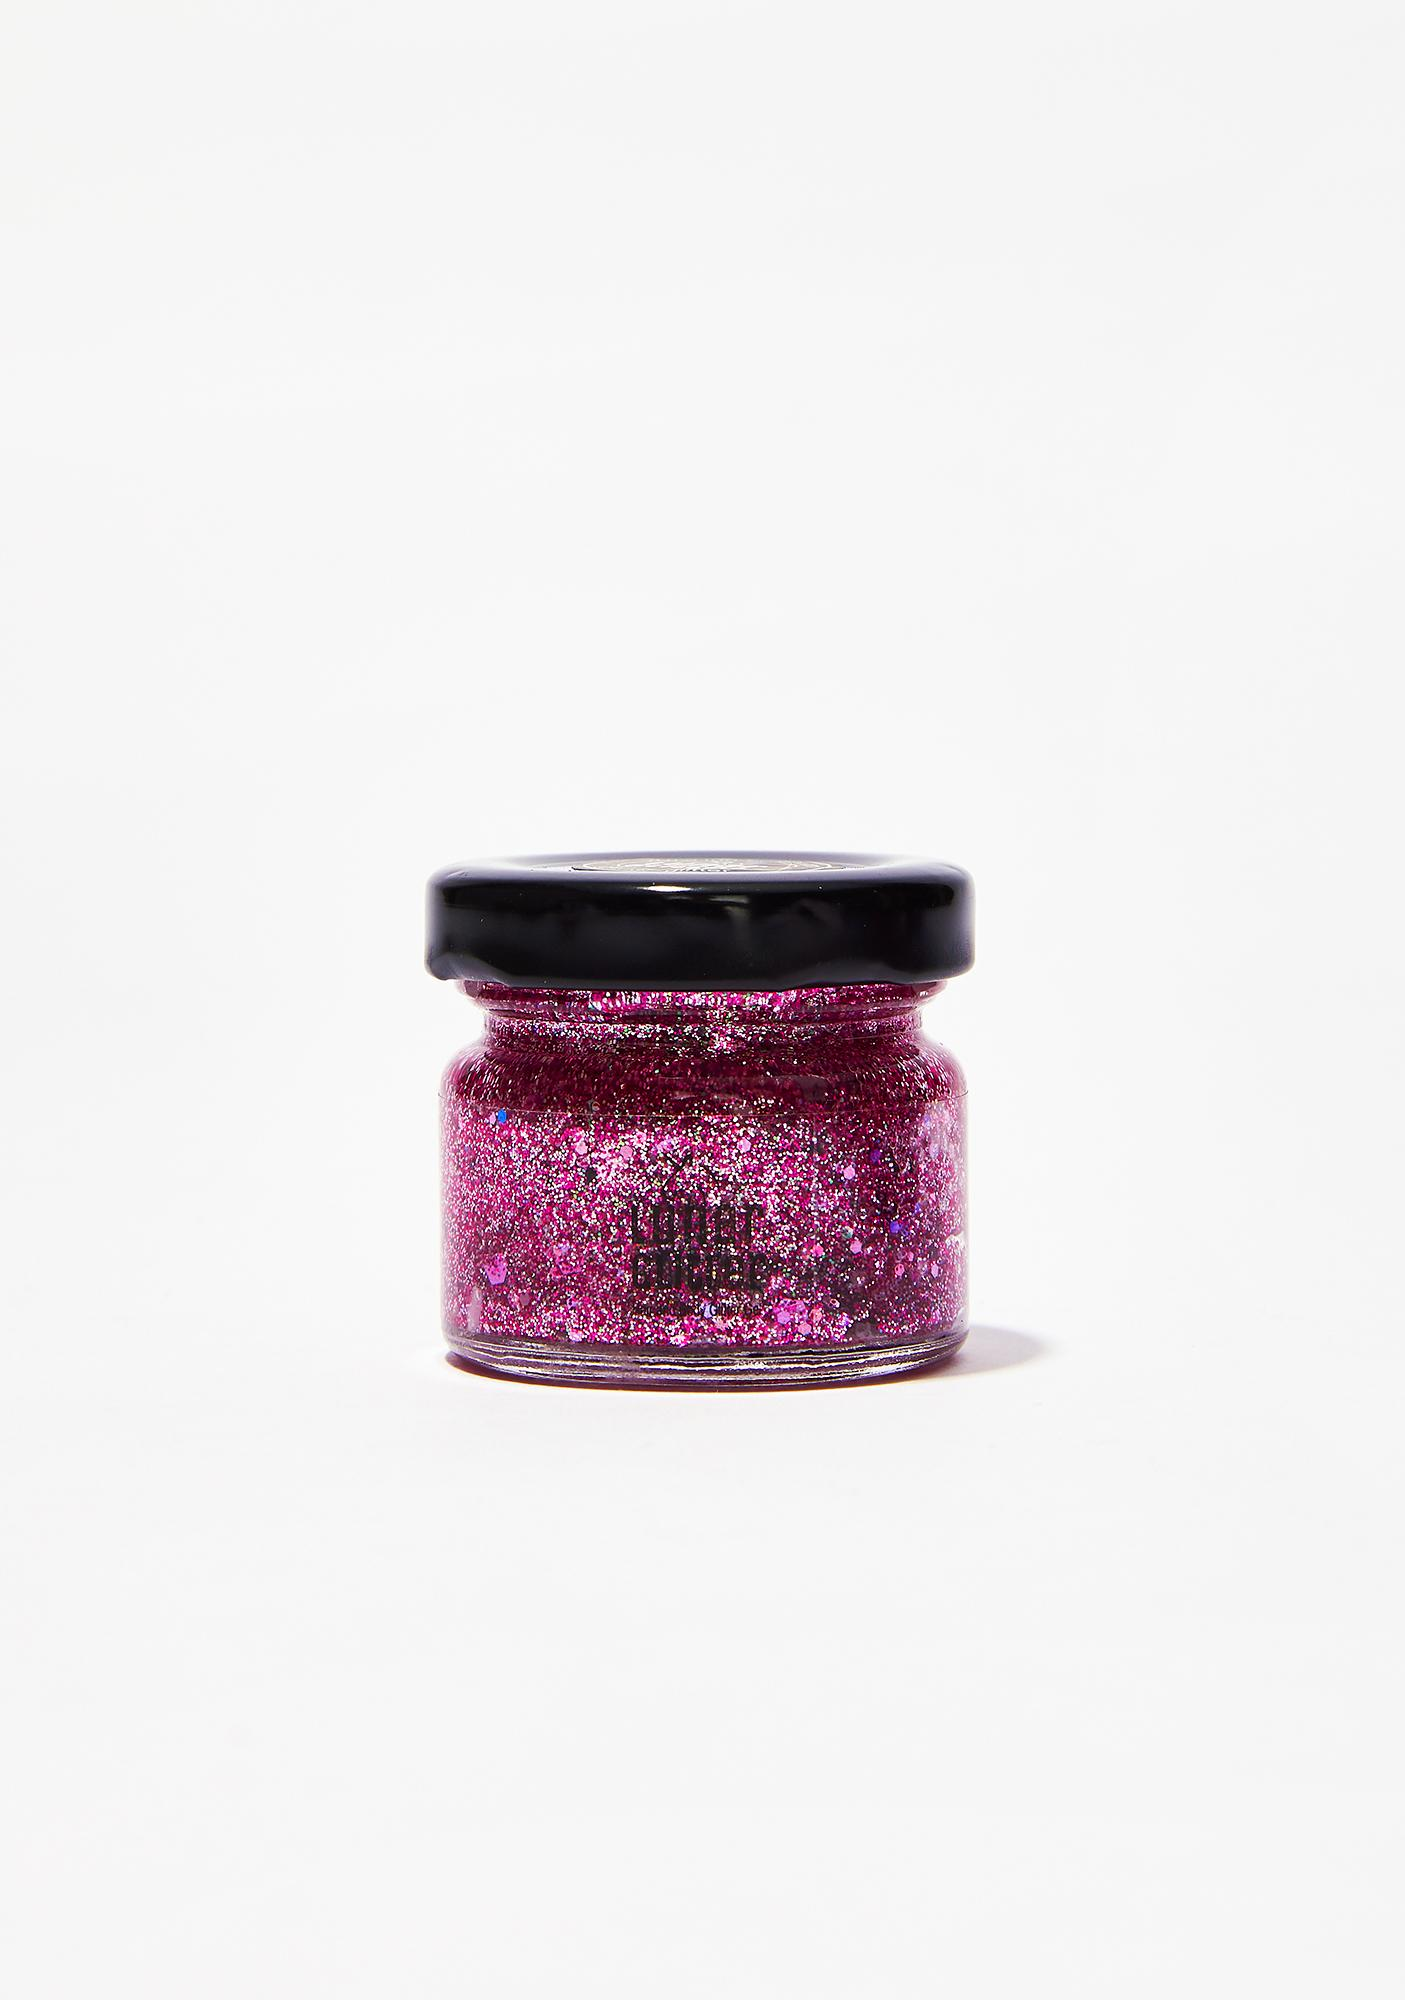 Pixie Kandy Glitter Gel by Lunar Glitter